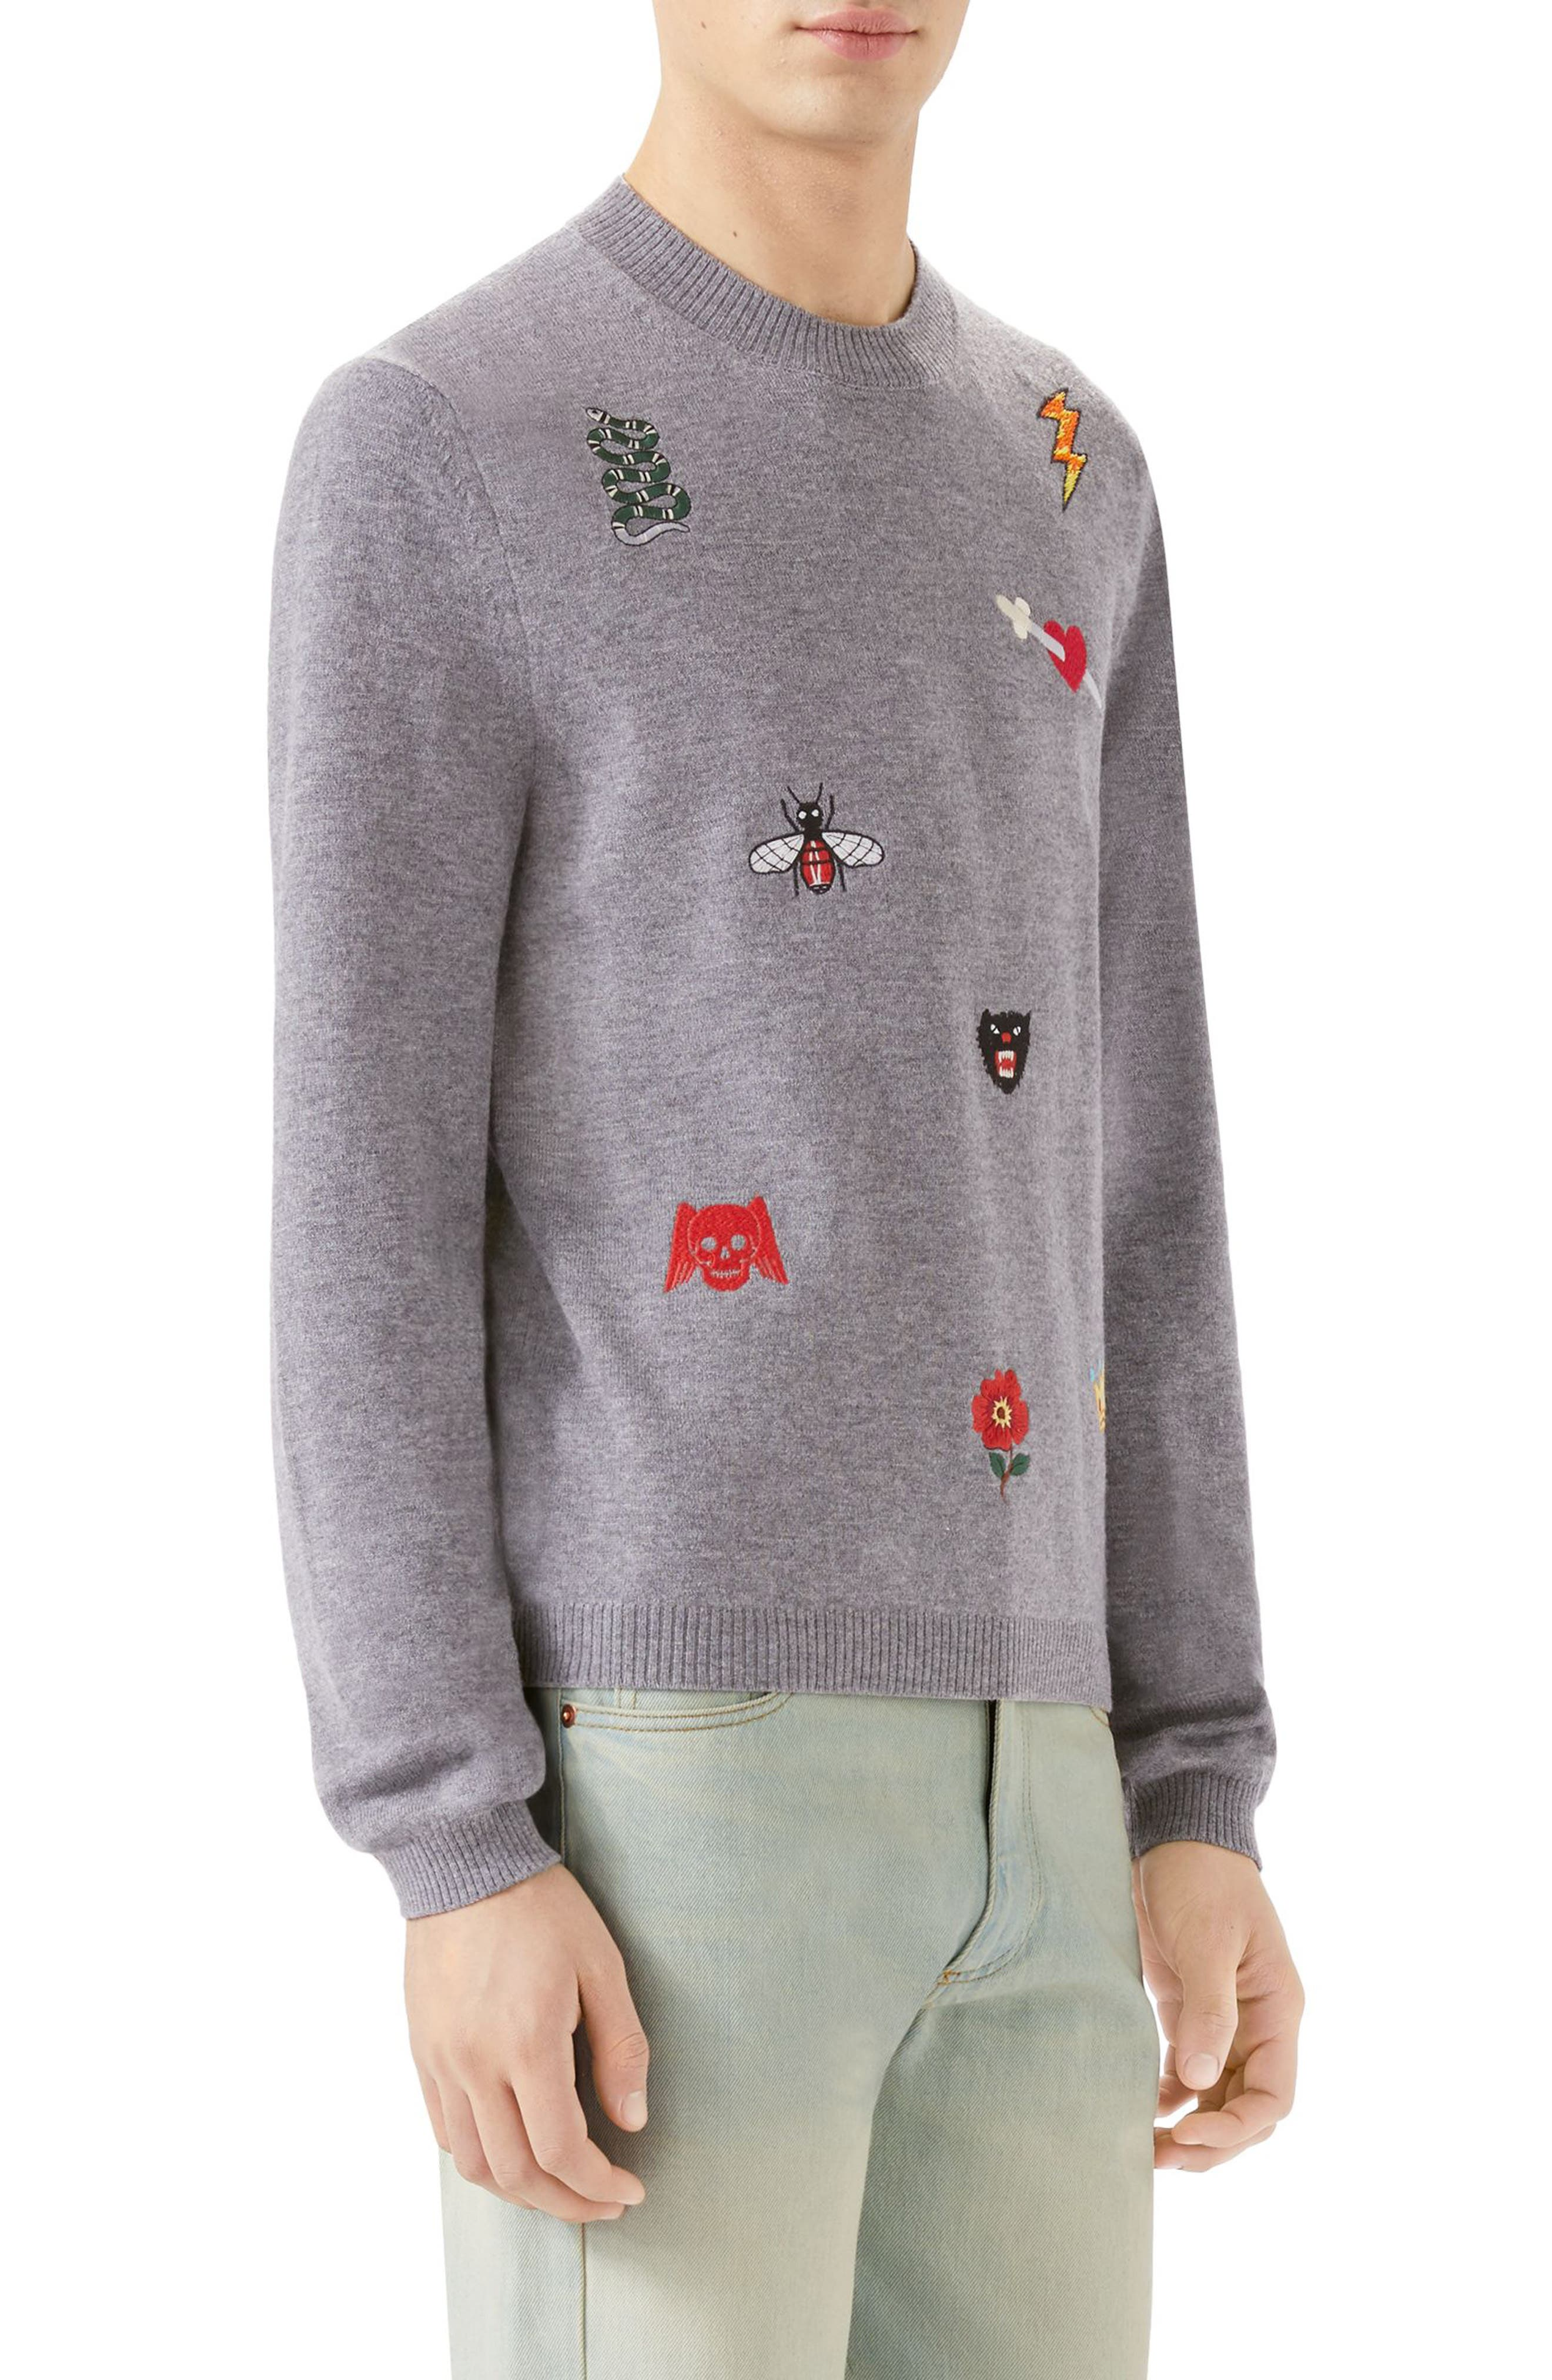 Embroidered Wool Crewneck Sweater,                             Alternate thumbnail 3, color,                             Medium Grey